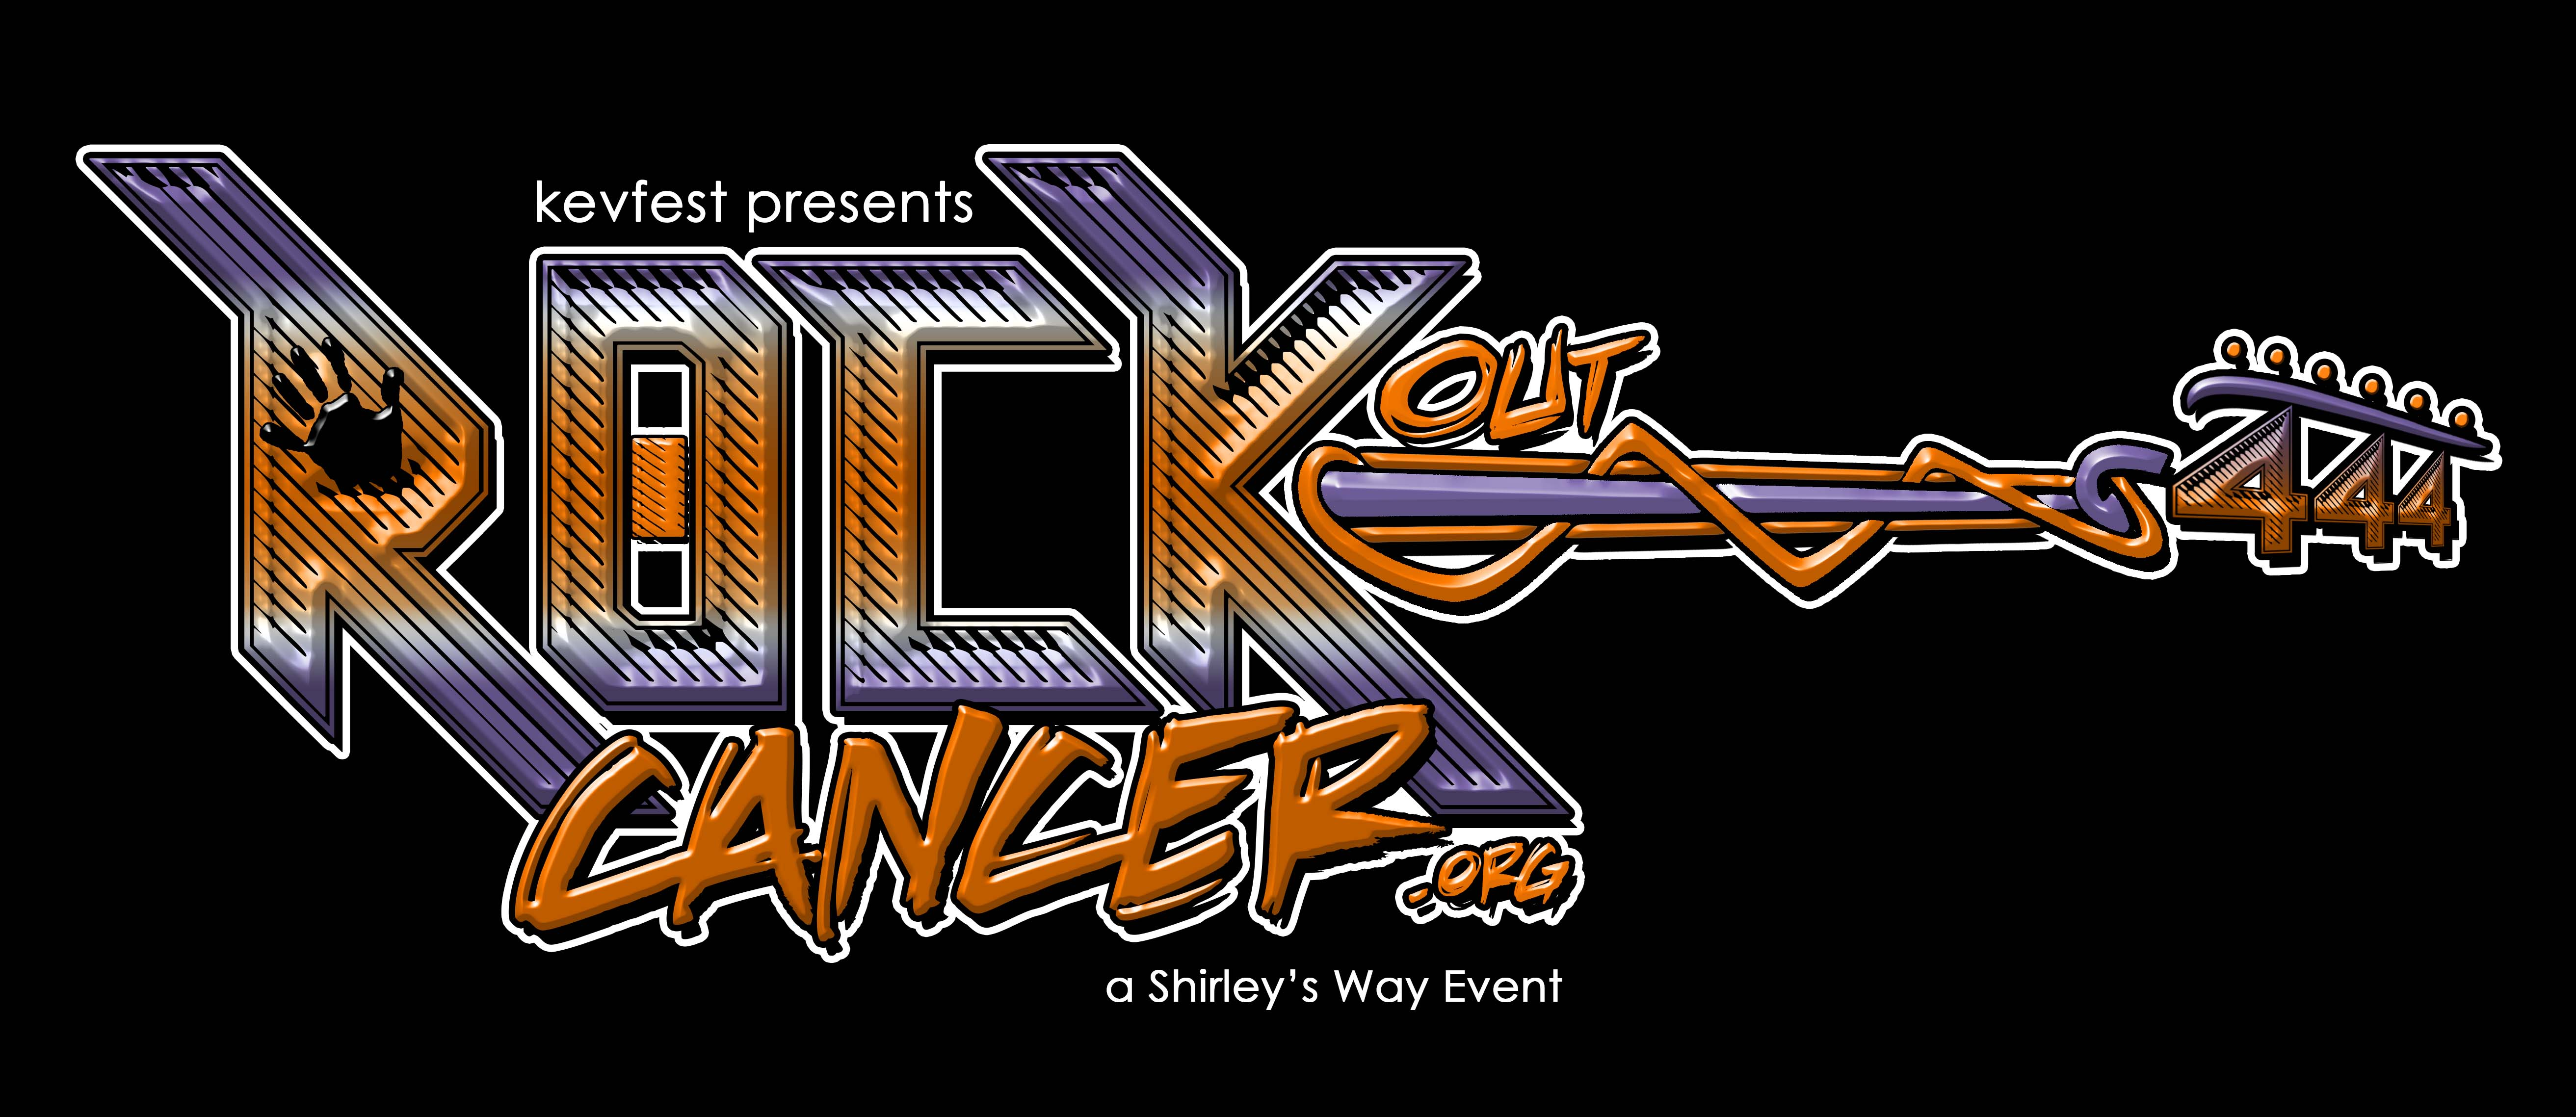 Kevfest Presents: Rock Out Cancer